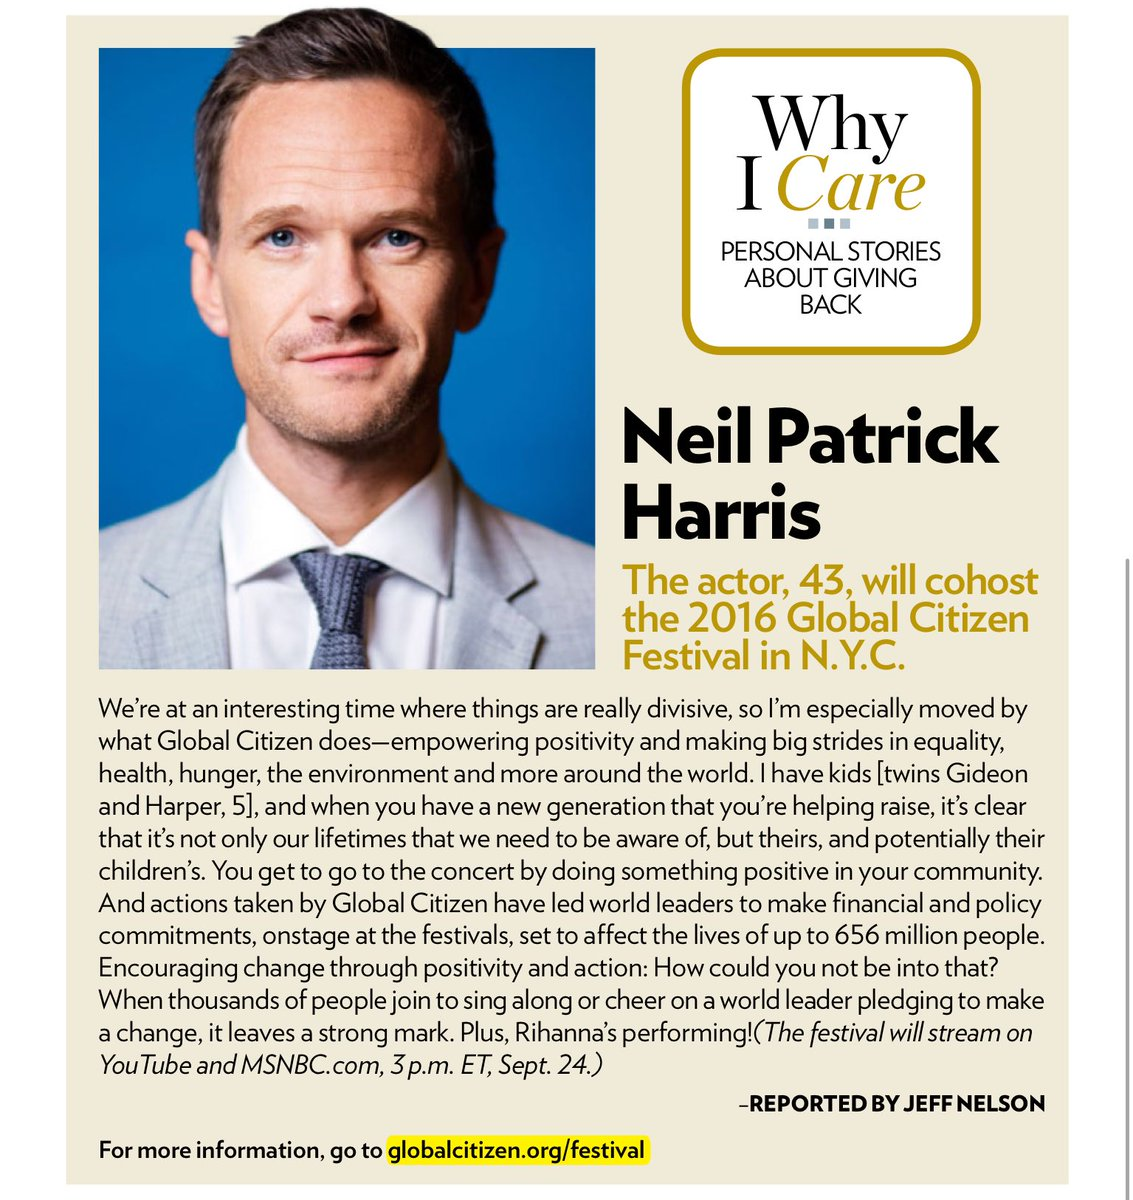 Sweet article on @ActuallyNPH in this weeks People Magazine. https://t.co/aKObdBynqG